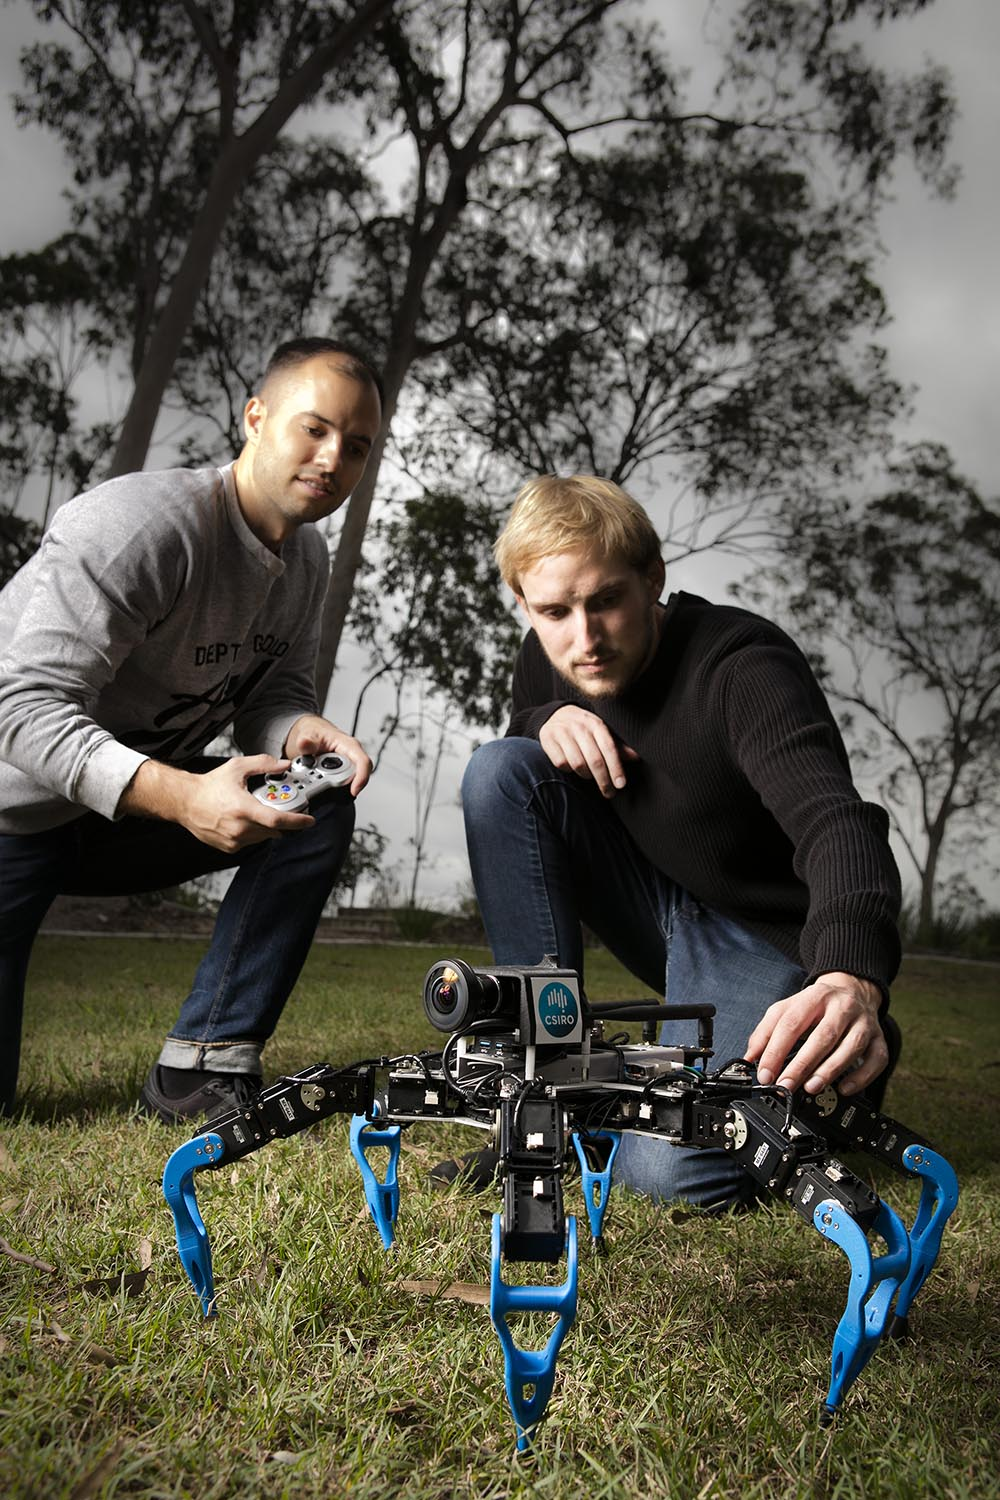 Two people contolling a black spider-like robot with four legs as it walks along the ground.